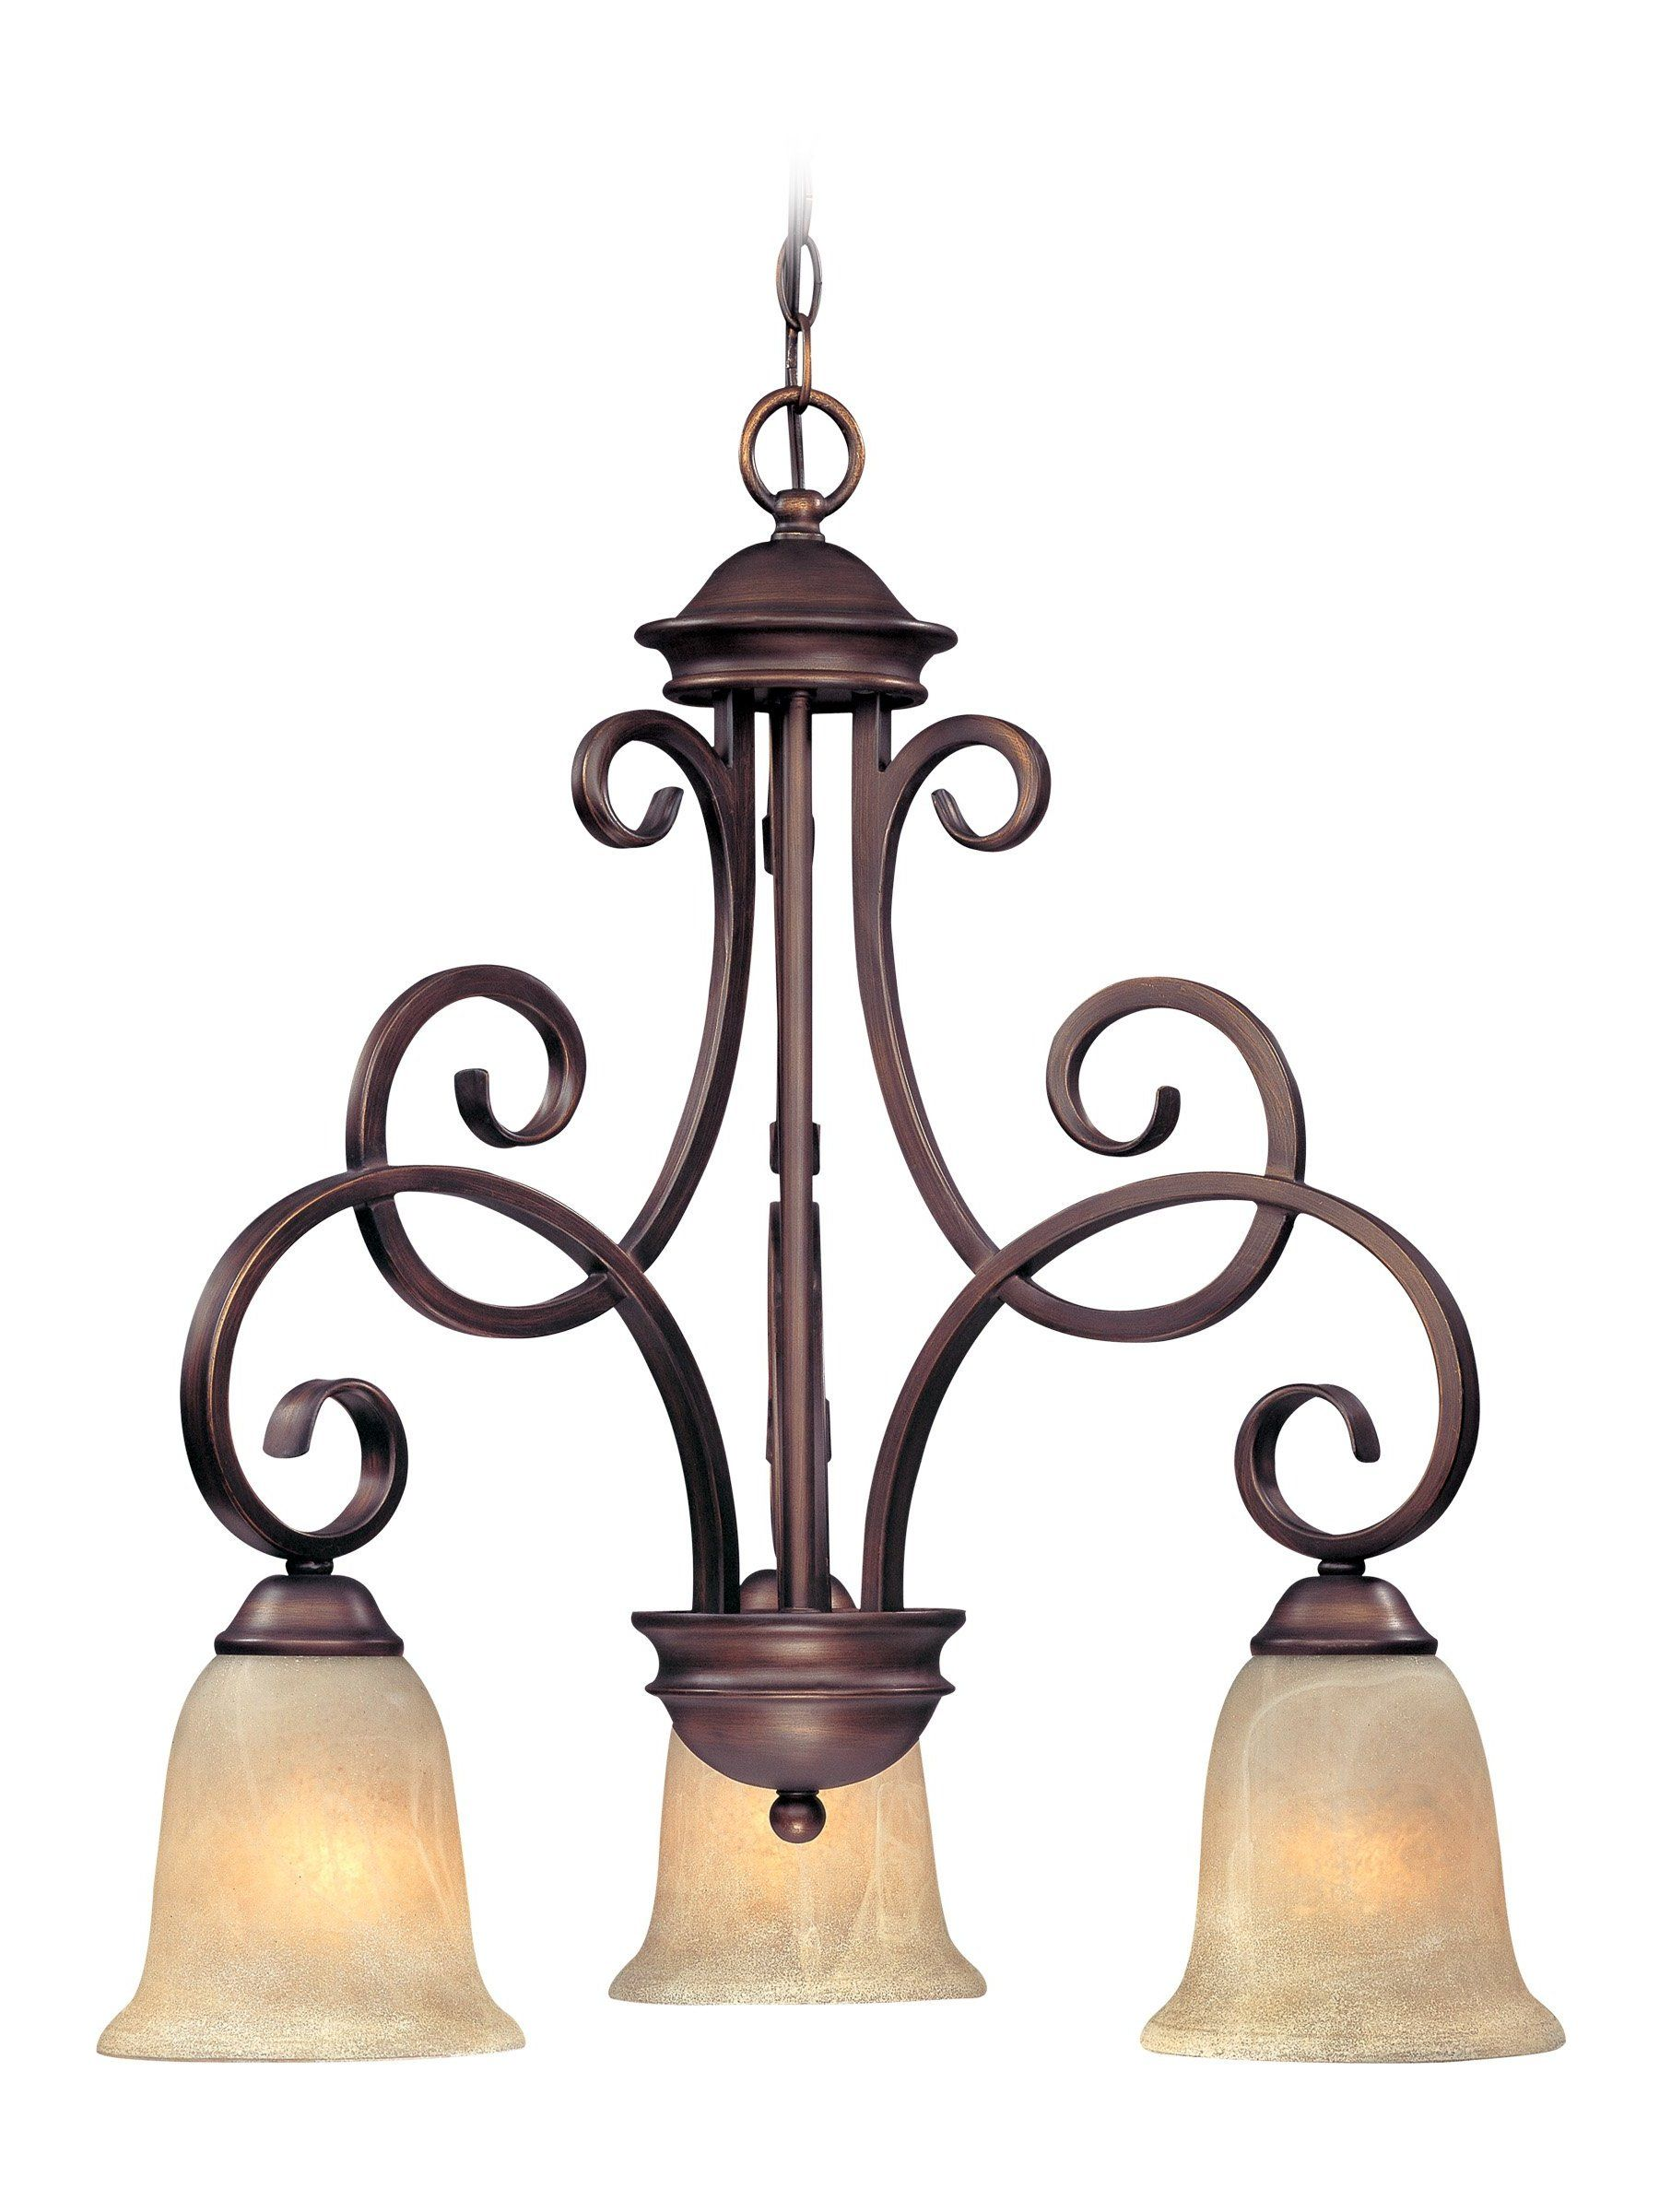 Tuscan chandelier lighting chandelier from the medici tuscan chandelier lighting chandelier from the medici collection this three down chandelier arubaitofo Images